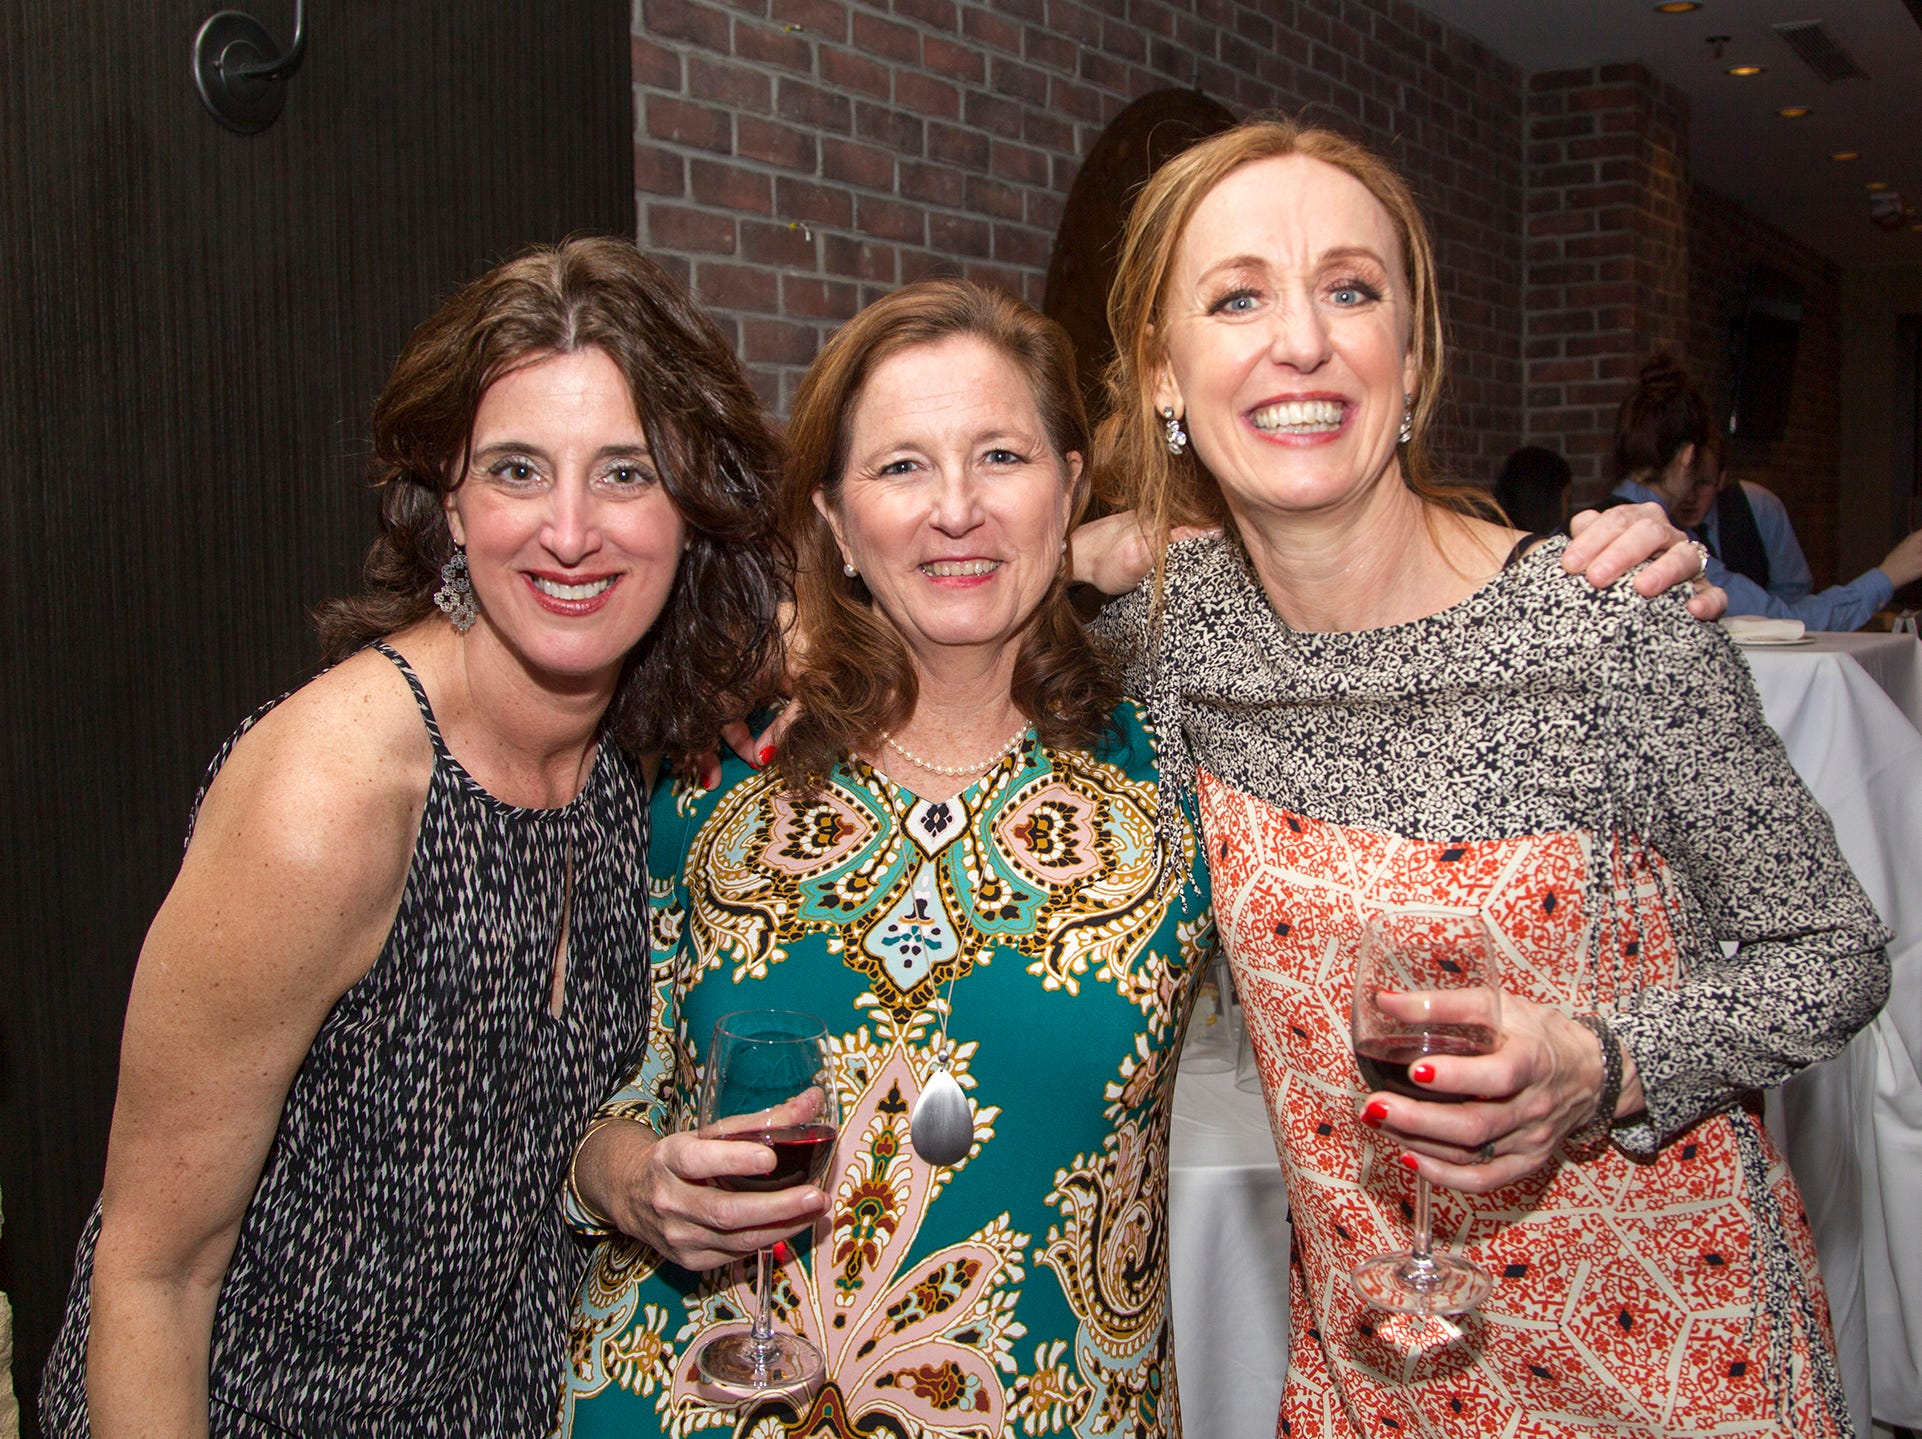 Janine, Deanne, Carrie. Ridgewood High School 2019 Jamboree after party at Park West Loft in Ridgewood.  2/9/2019